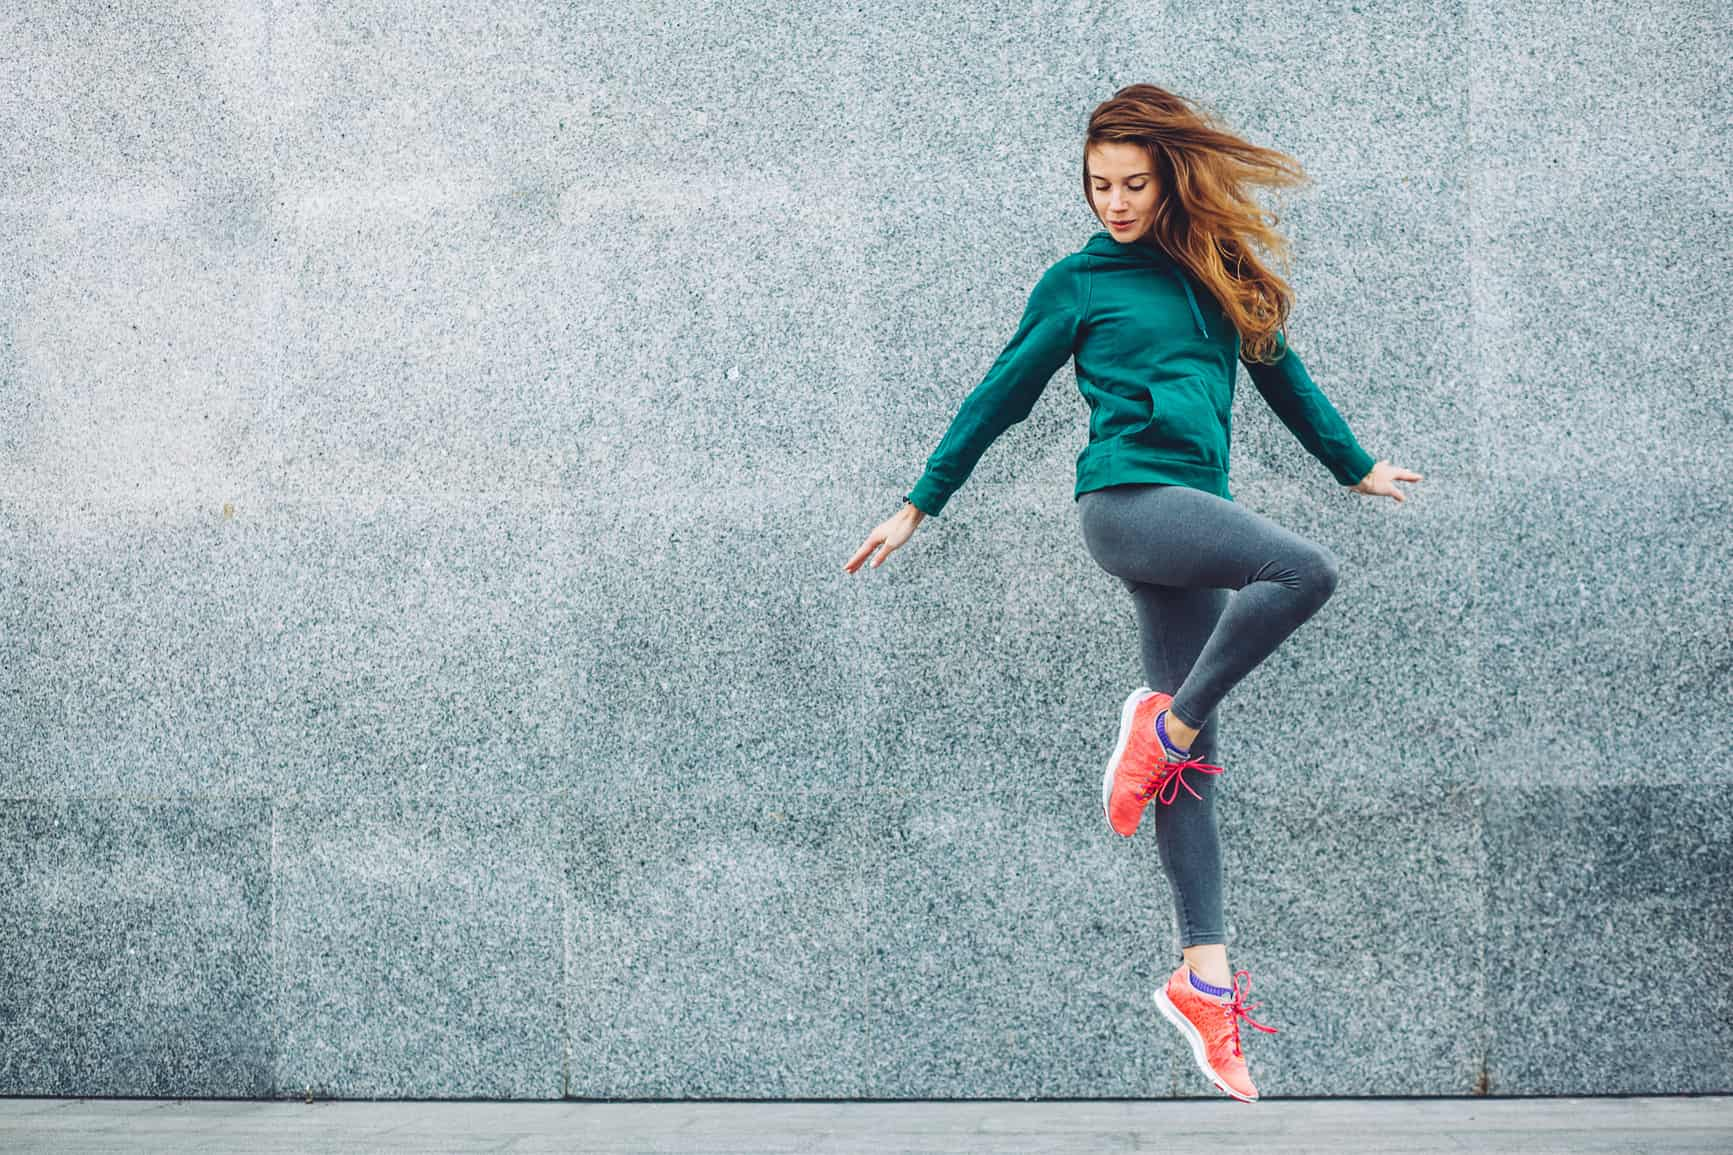 Workout Legging Buying Guide: 8 Tips for Choosing the Best Pair